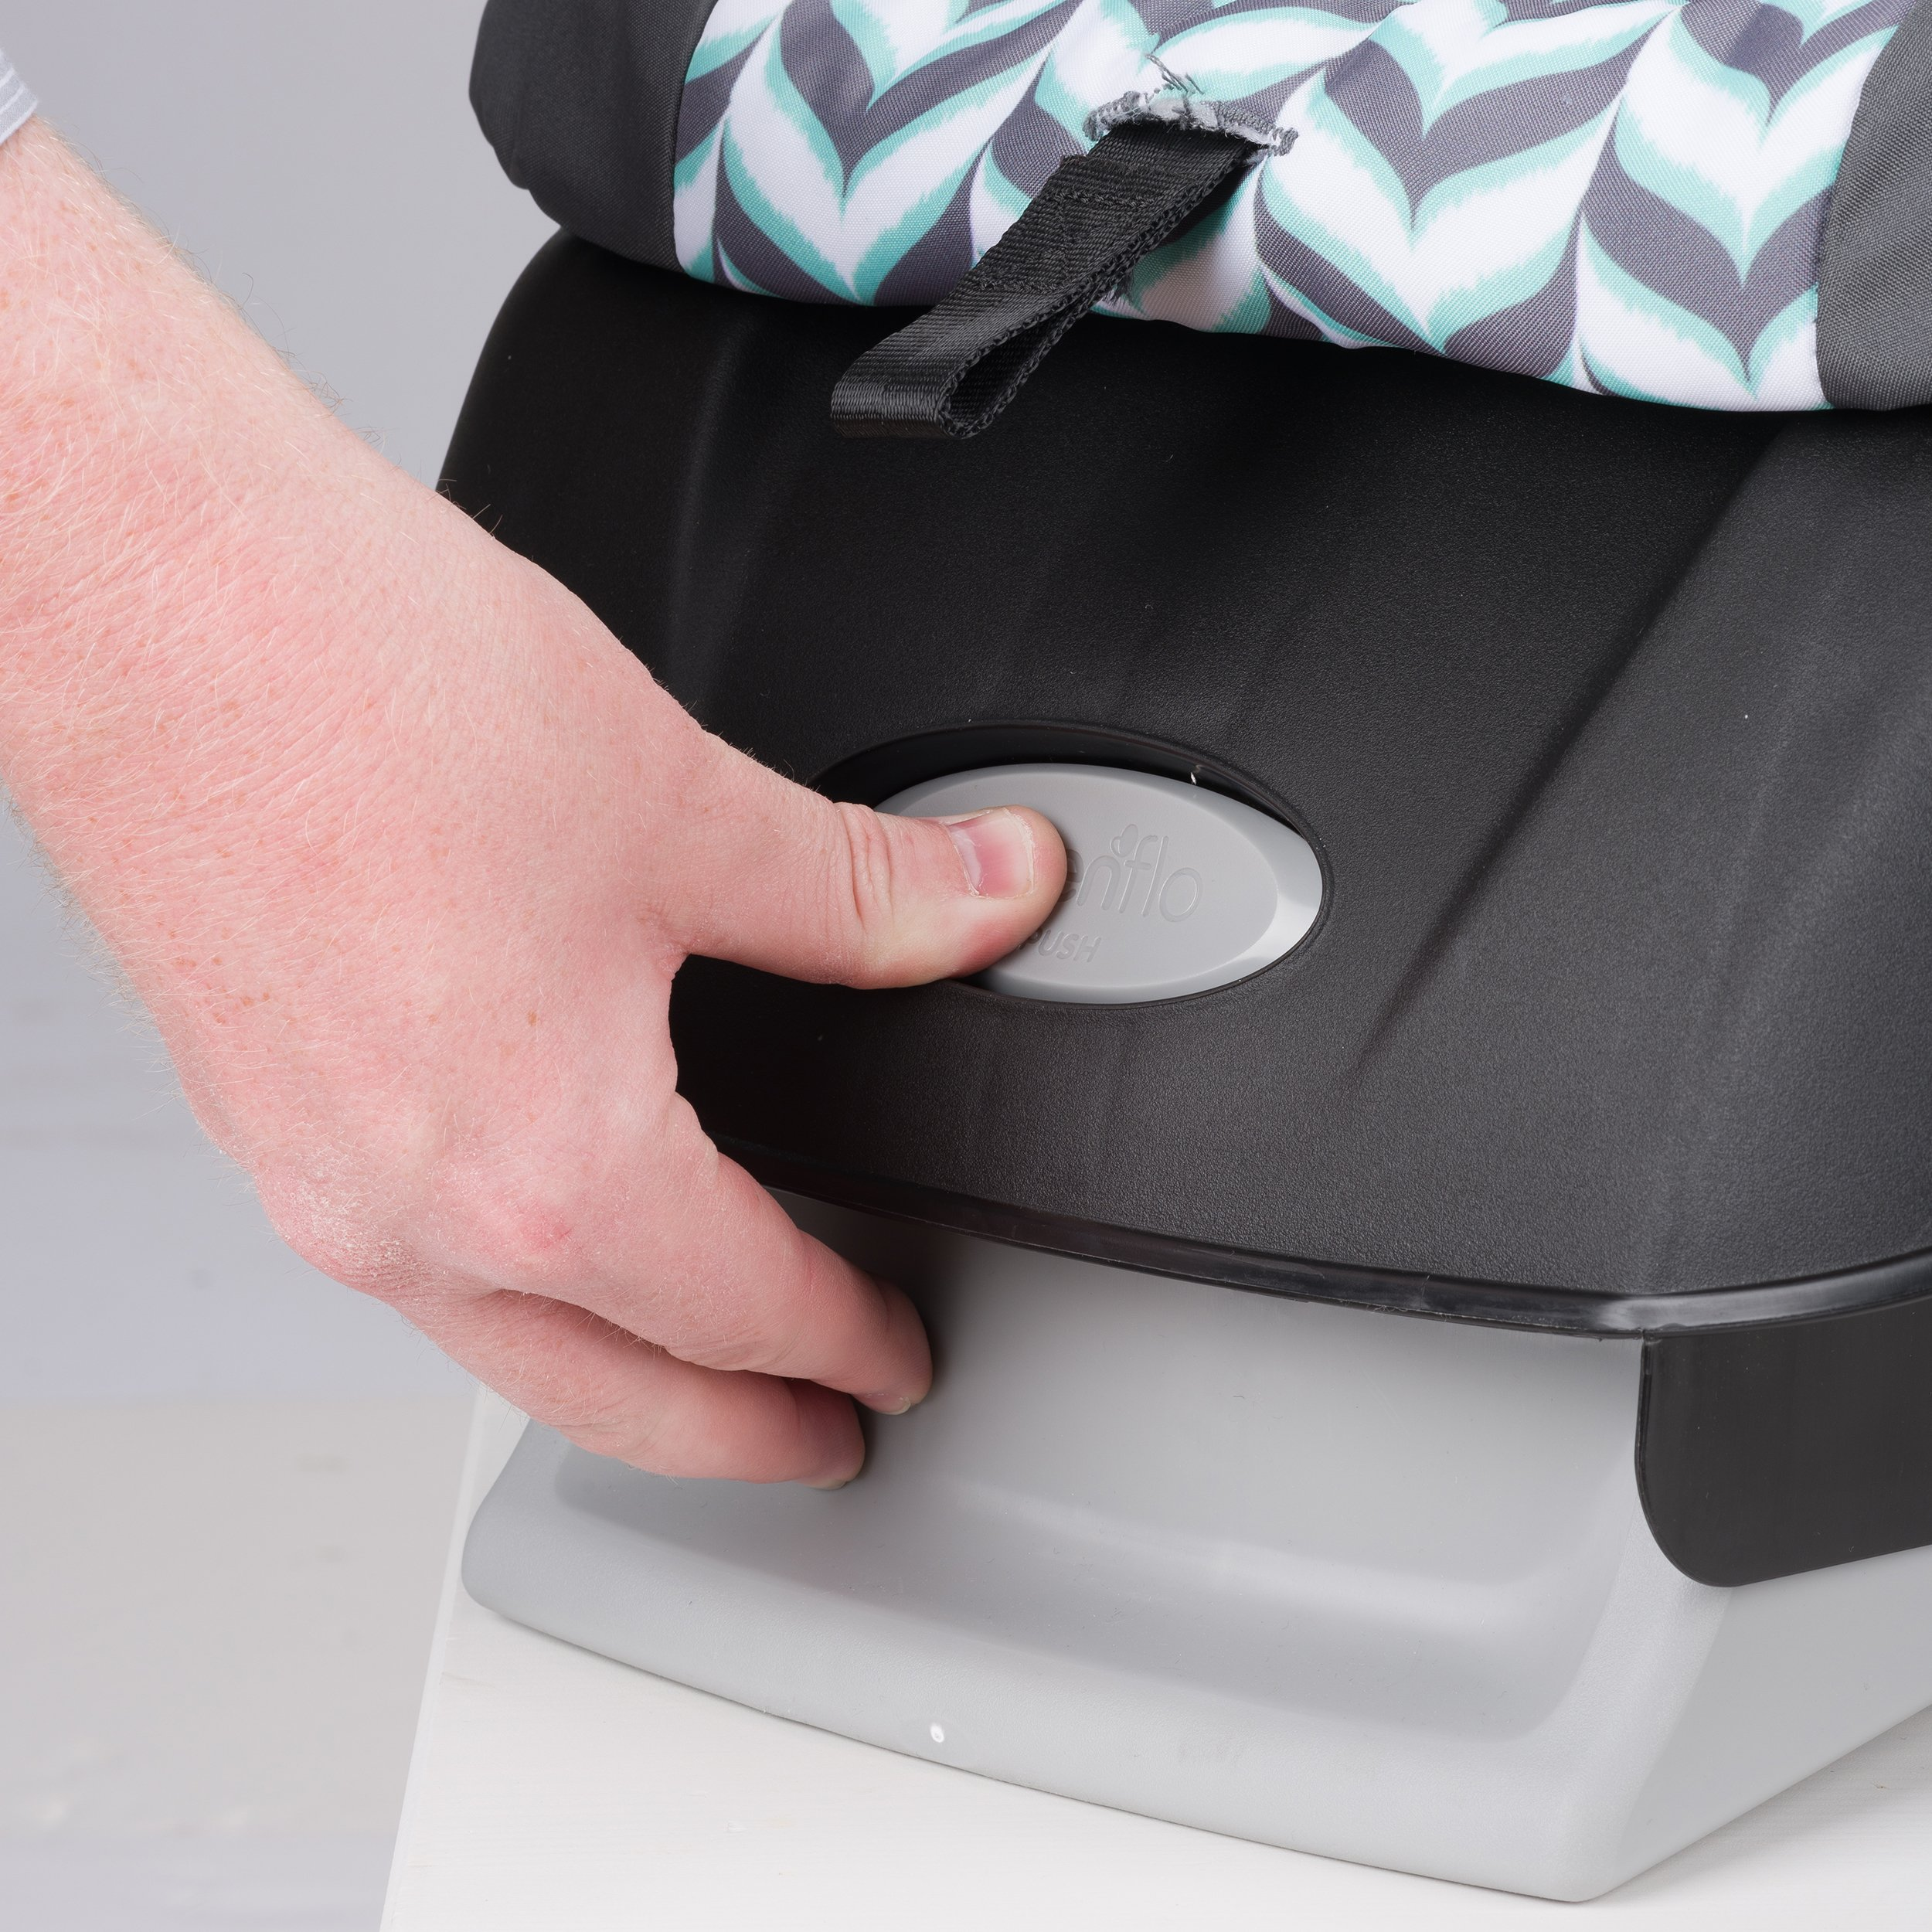 Evenflo Vive Travel System with Embrace, Spearmint Spree by Evenflo (Image #6)